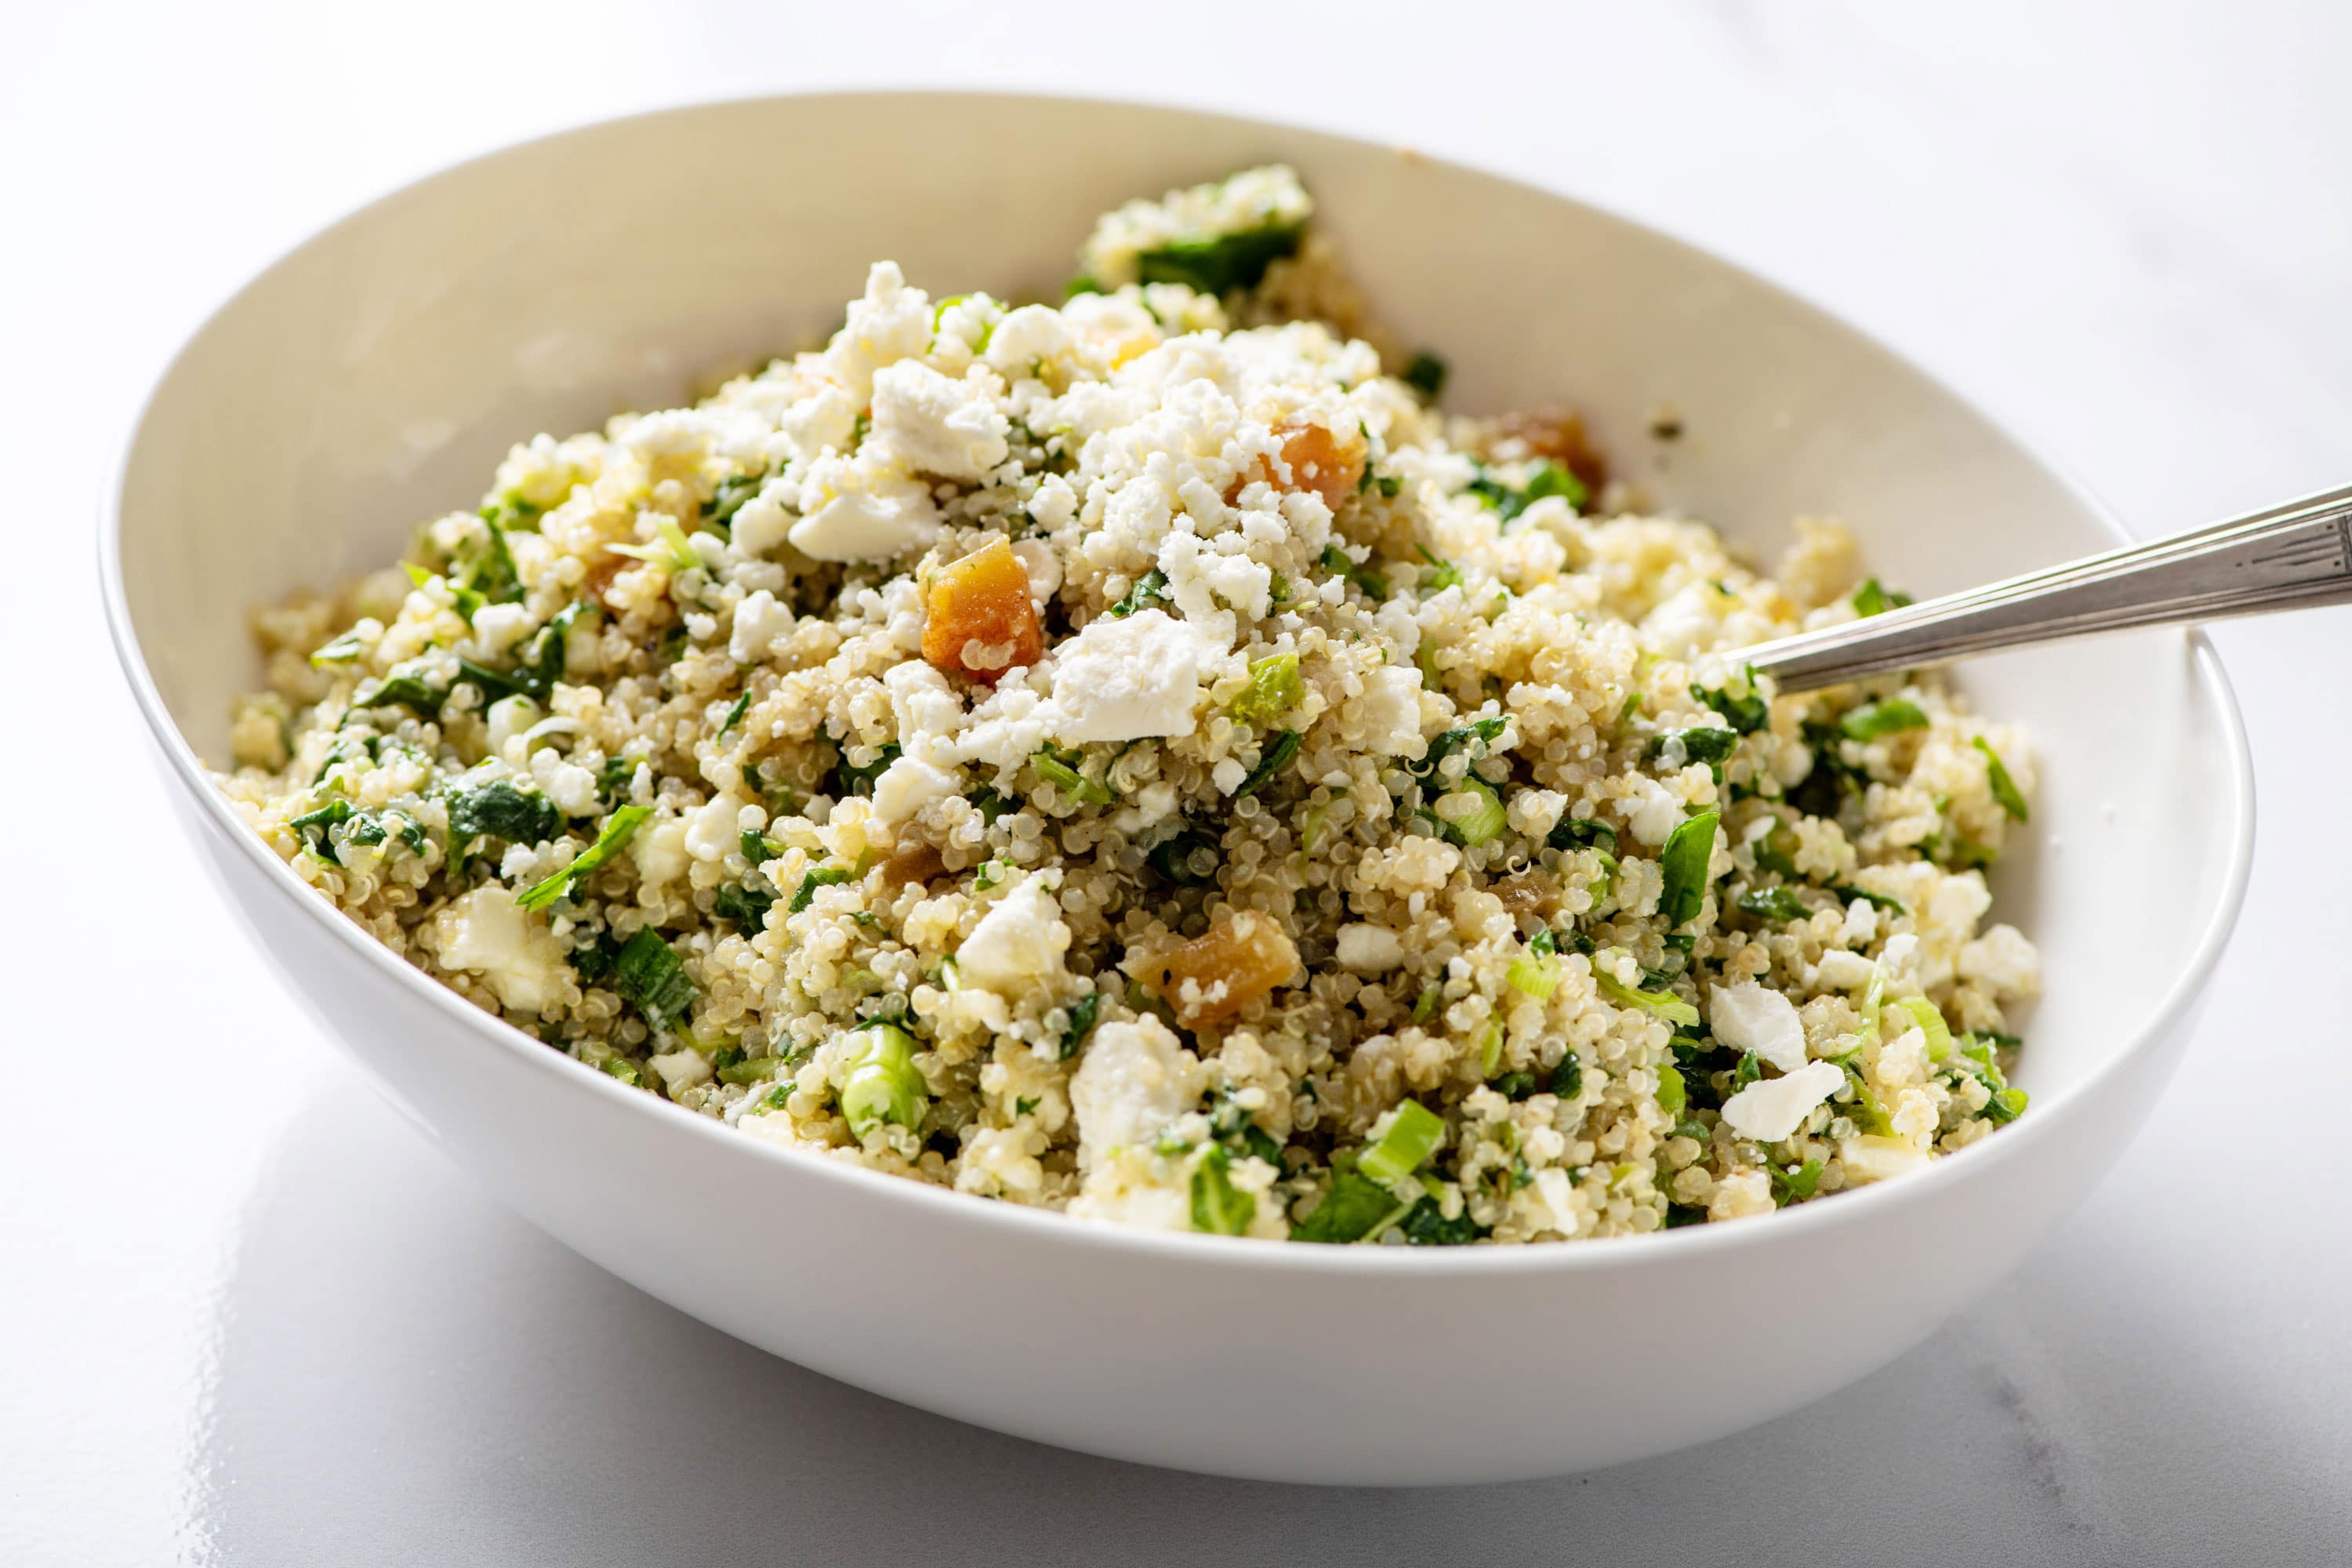 Kale Quinoa Salad With Honey Lemon Dijon Dressing The Mom 100